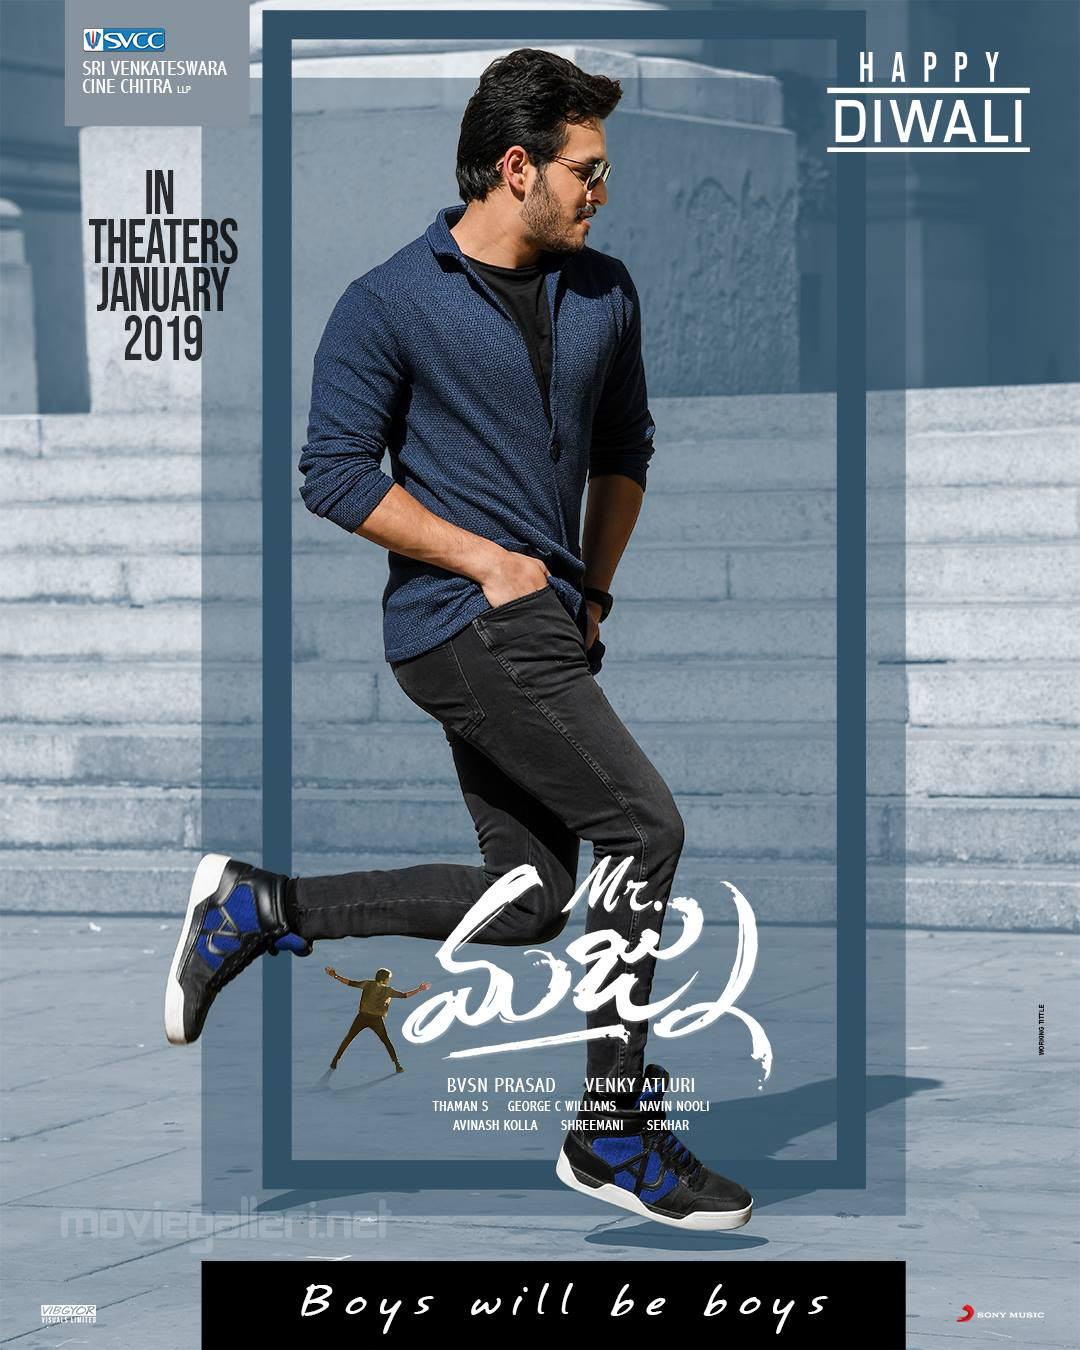 Actor Akhil Akkineni Mr Majnu Movie Diwali Wishes Poster HD